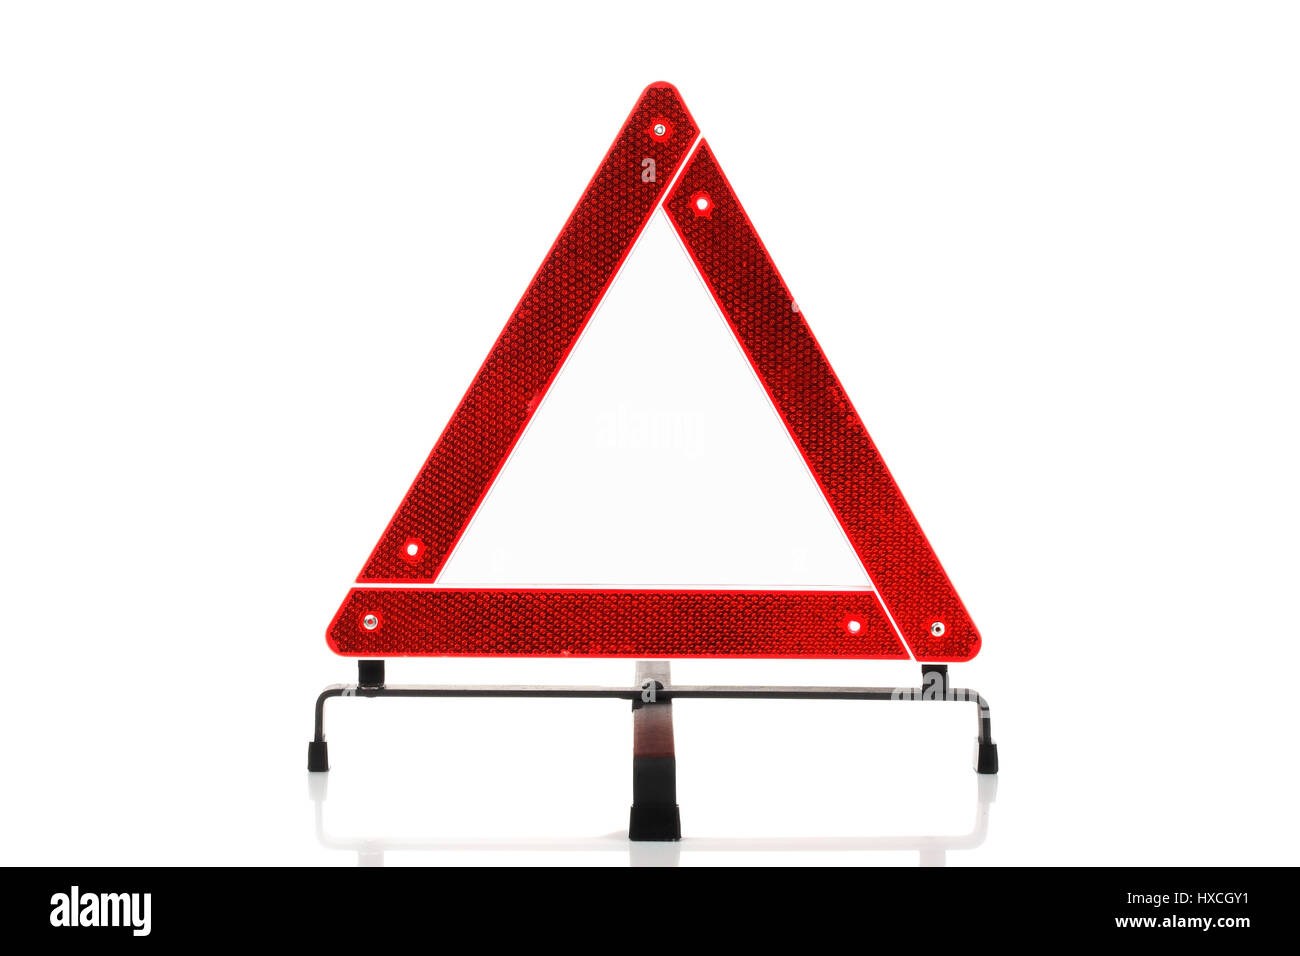 Warning triangle, Warndreieck Stock Photo